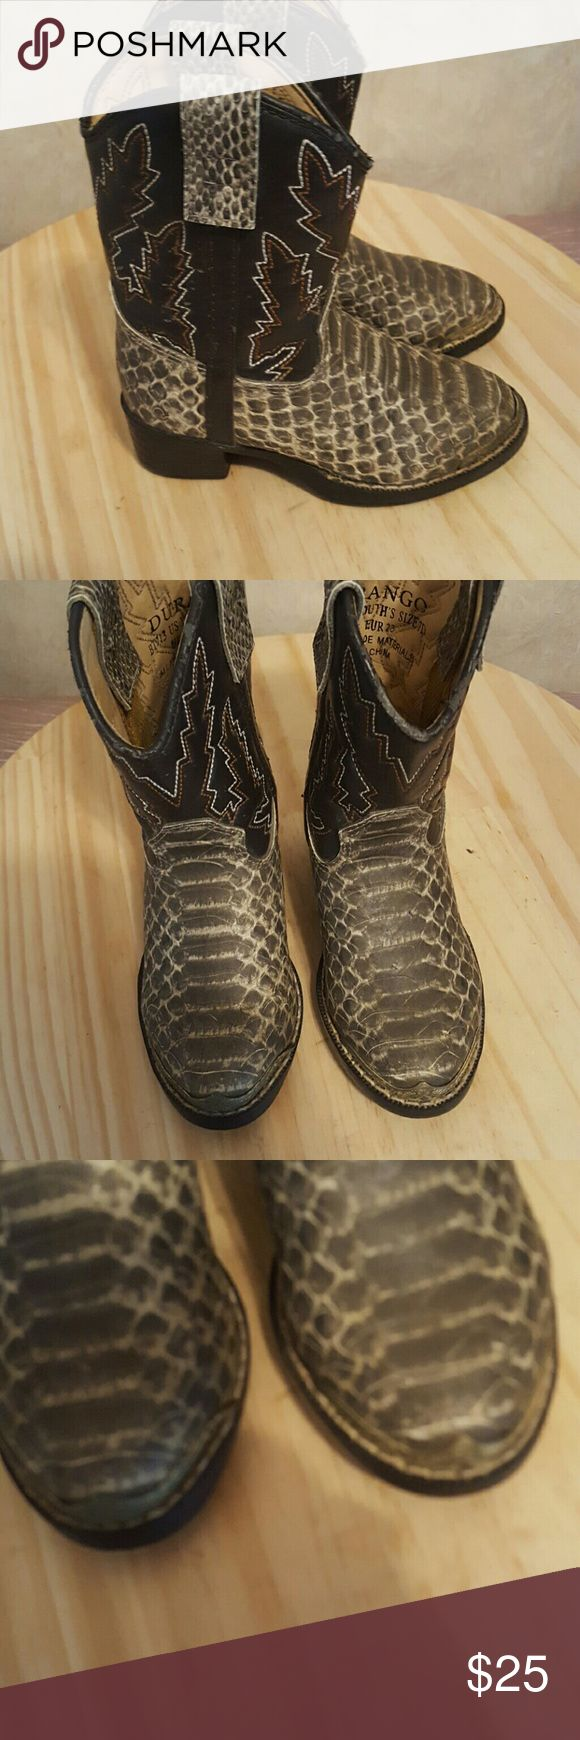 Durango faux Leather boots Adorable! Scuffed in couple spots as shown and metal tip on one bent back a tad. Otherwise great.           Tote g Durango Shoes Boots